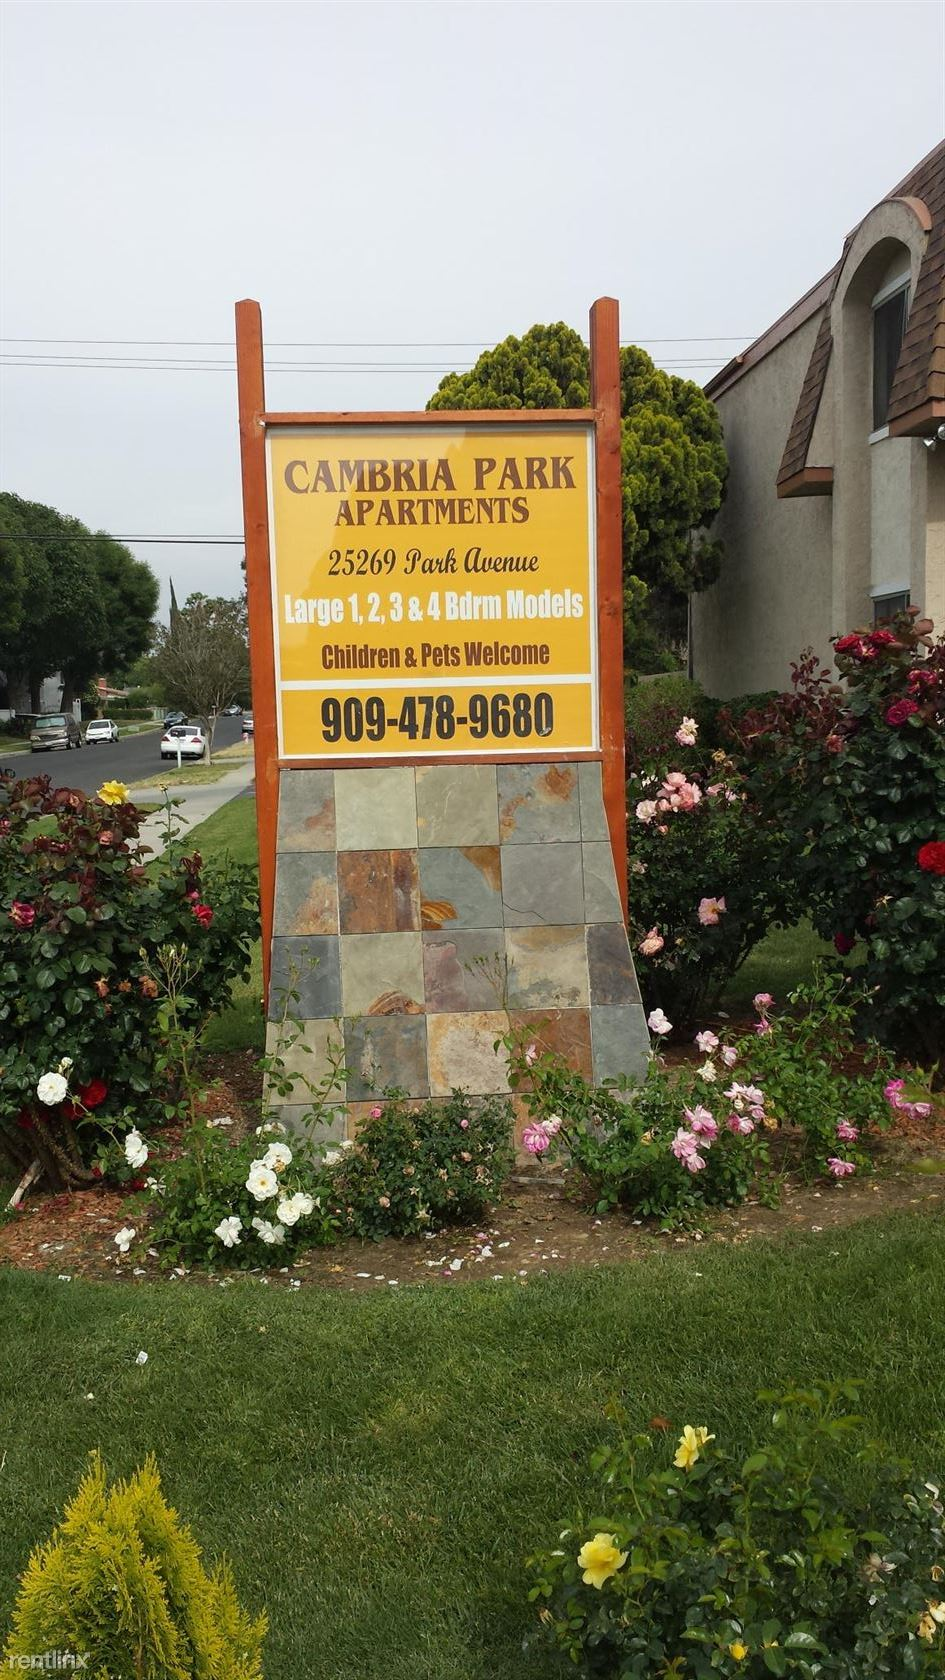 $985 - $1495 per month , 25284 Cottage Ave, Cambria Park Apartments